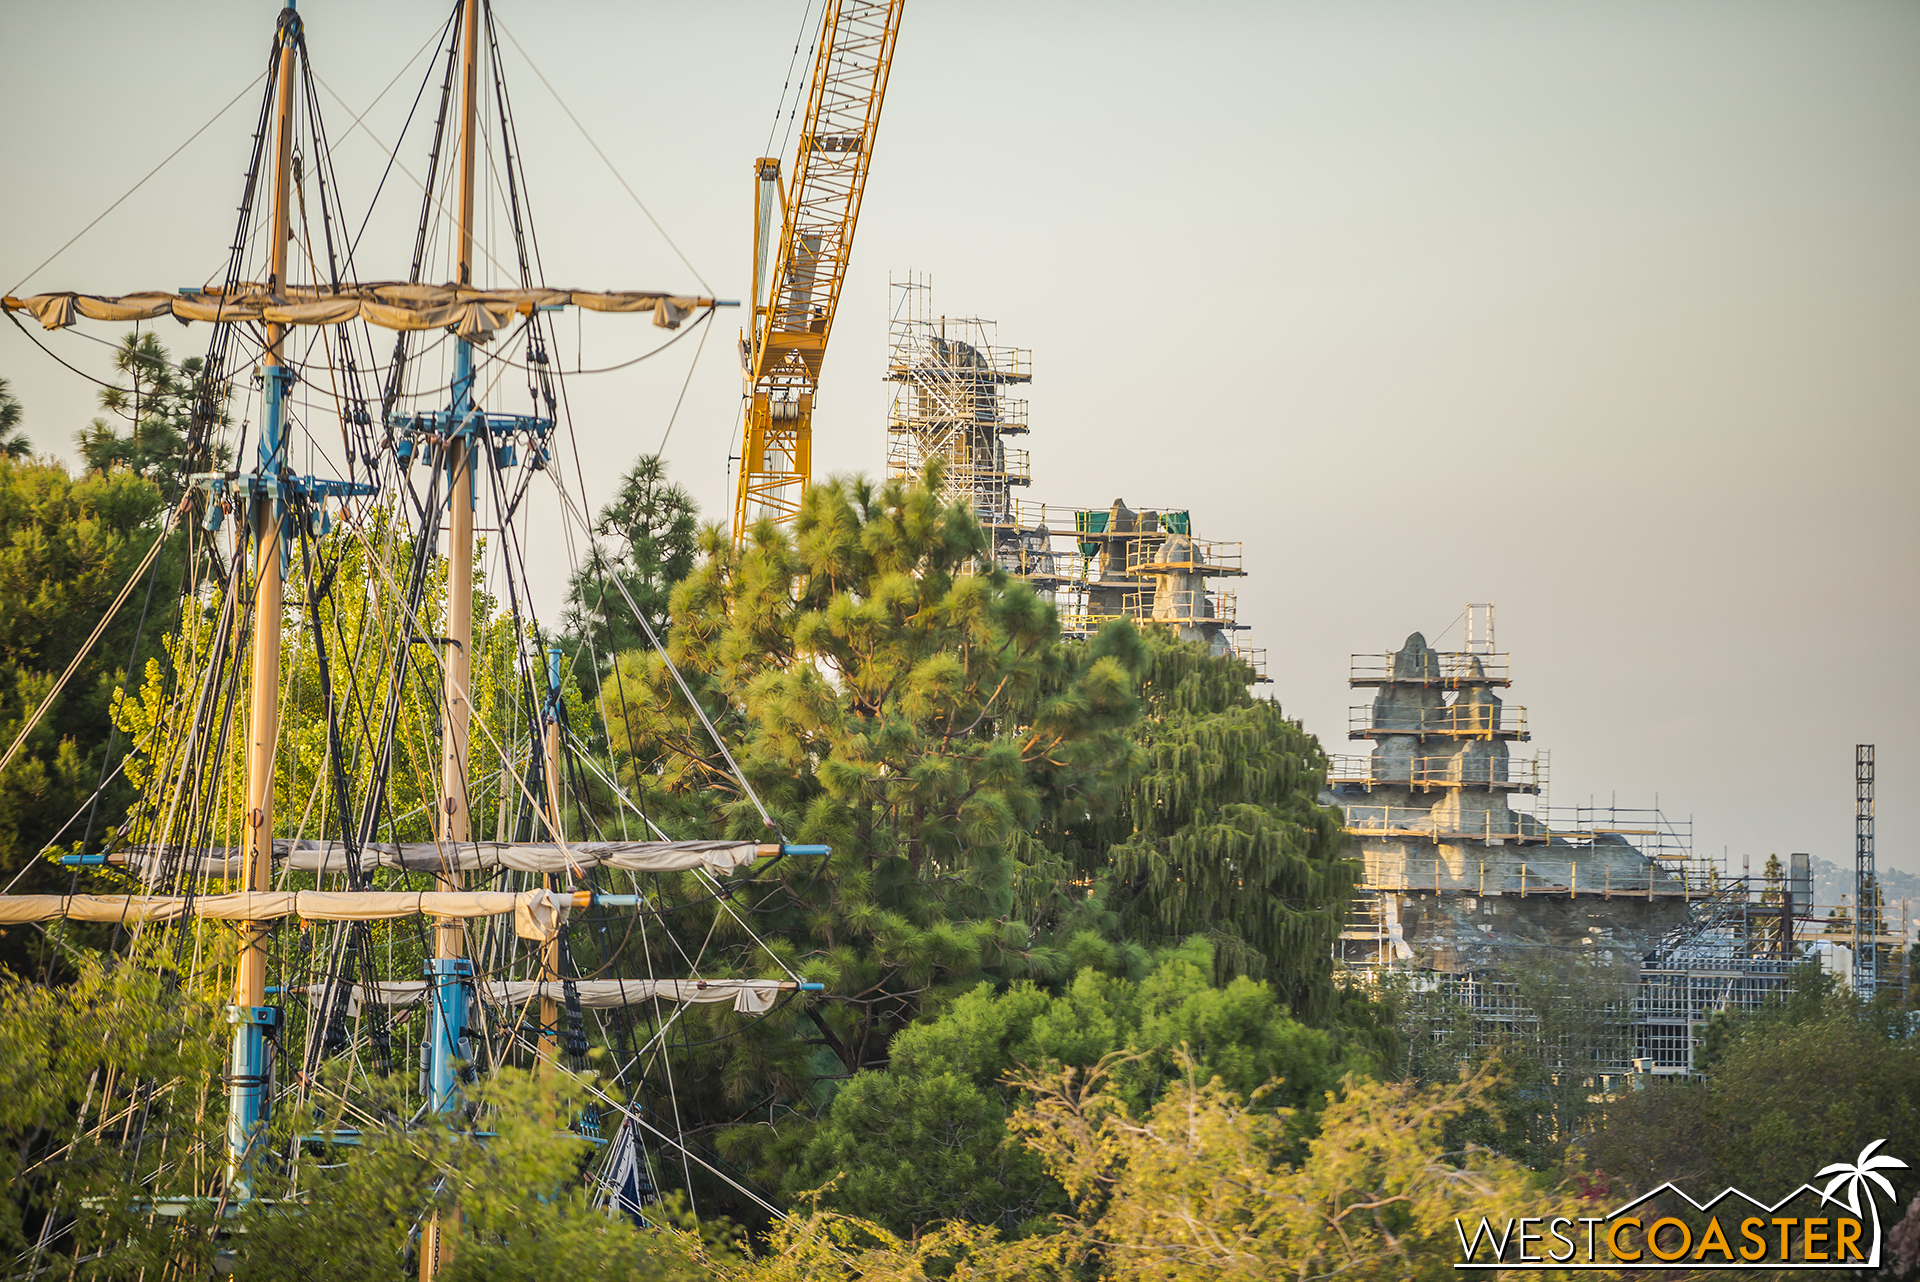 The peaks peek out past the trees of Frontierland.